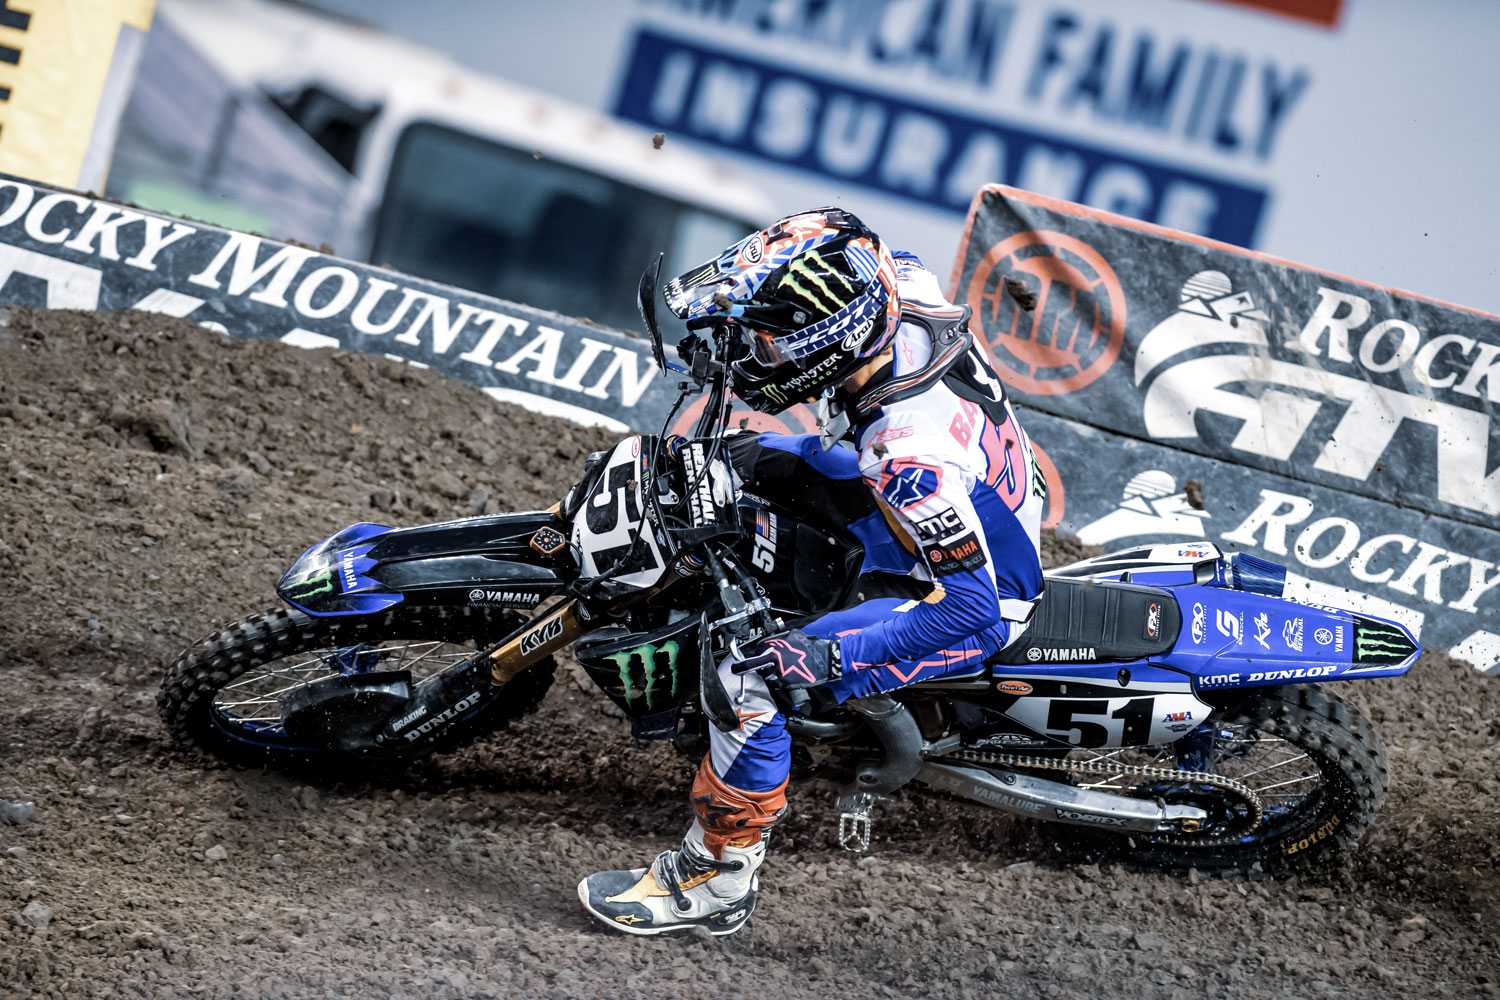 BARCIA_2019_SEATTLE_SX_web3.jpg